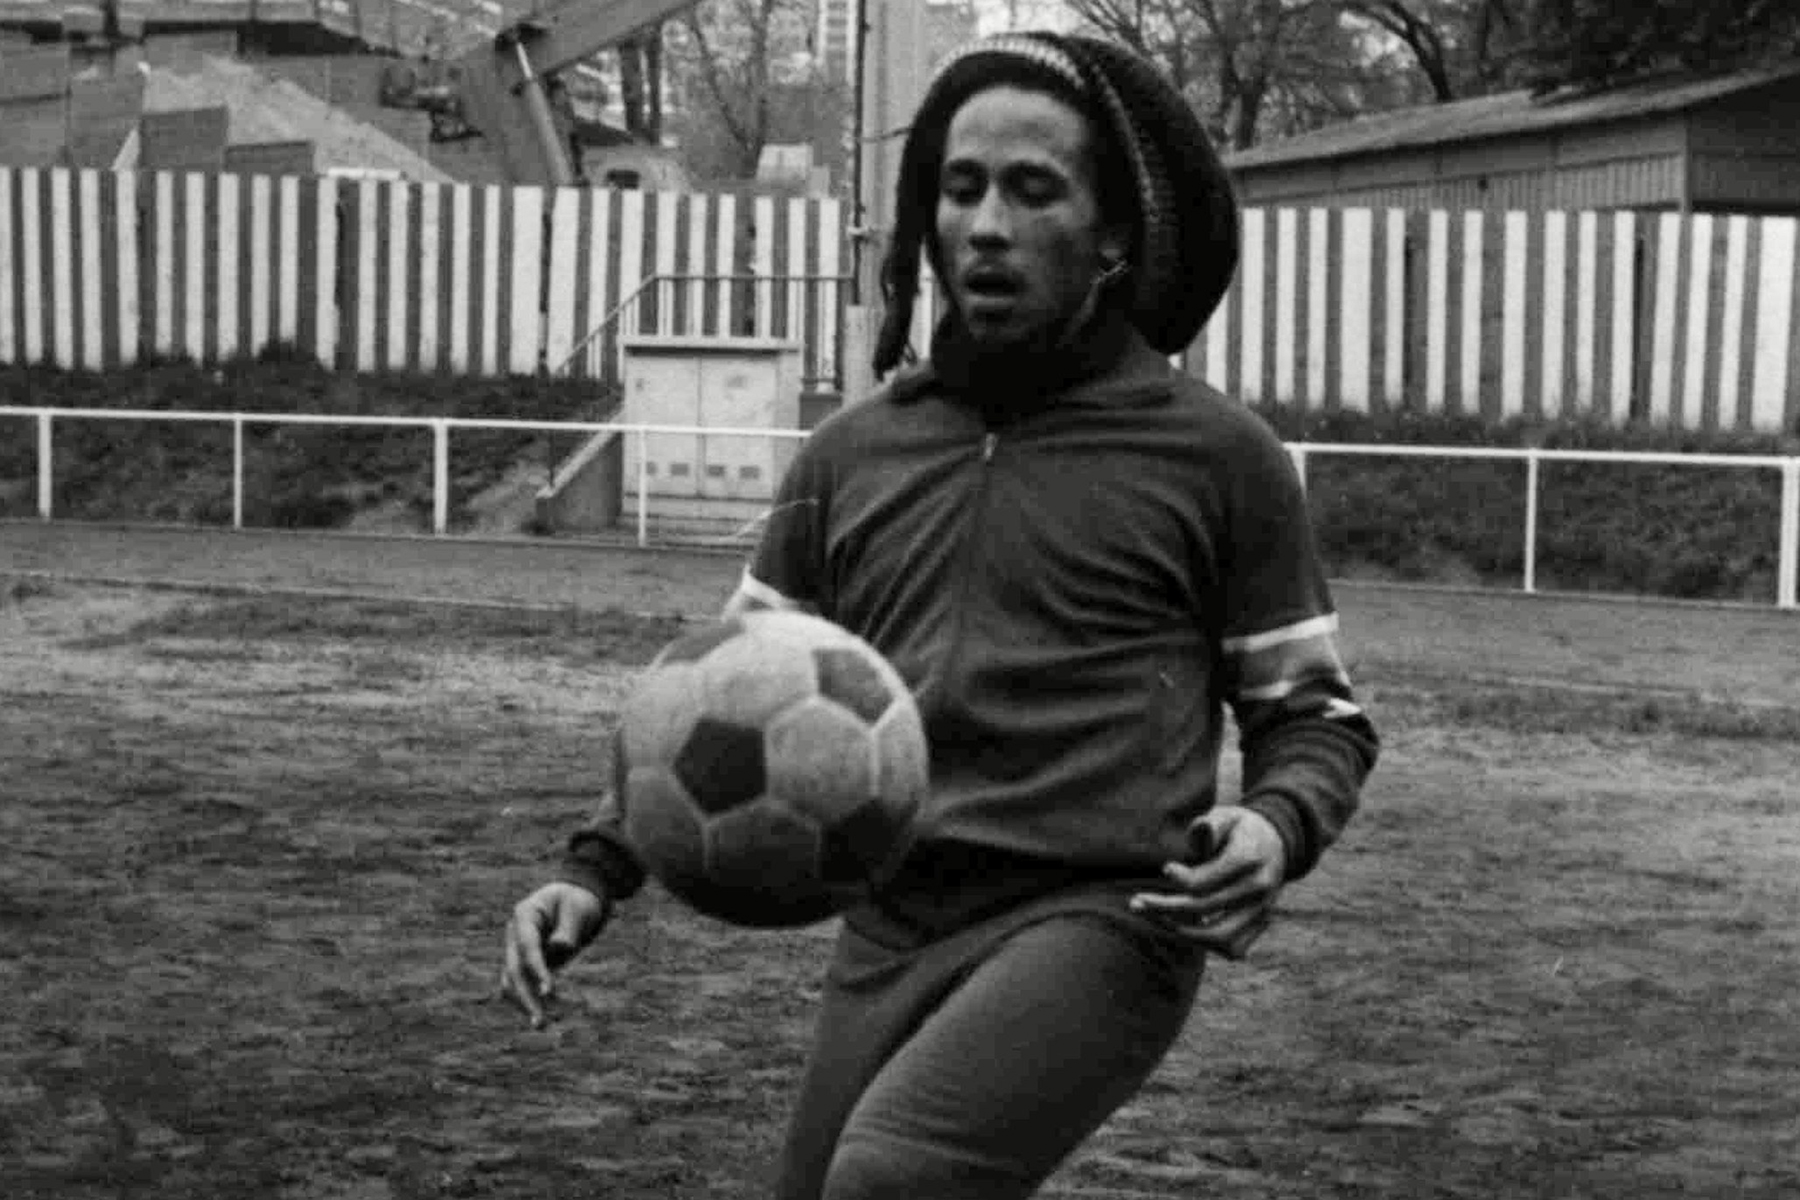 'Rhythm of the Game' Documents Bob Marley's Passion for Soccer